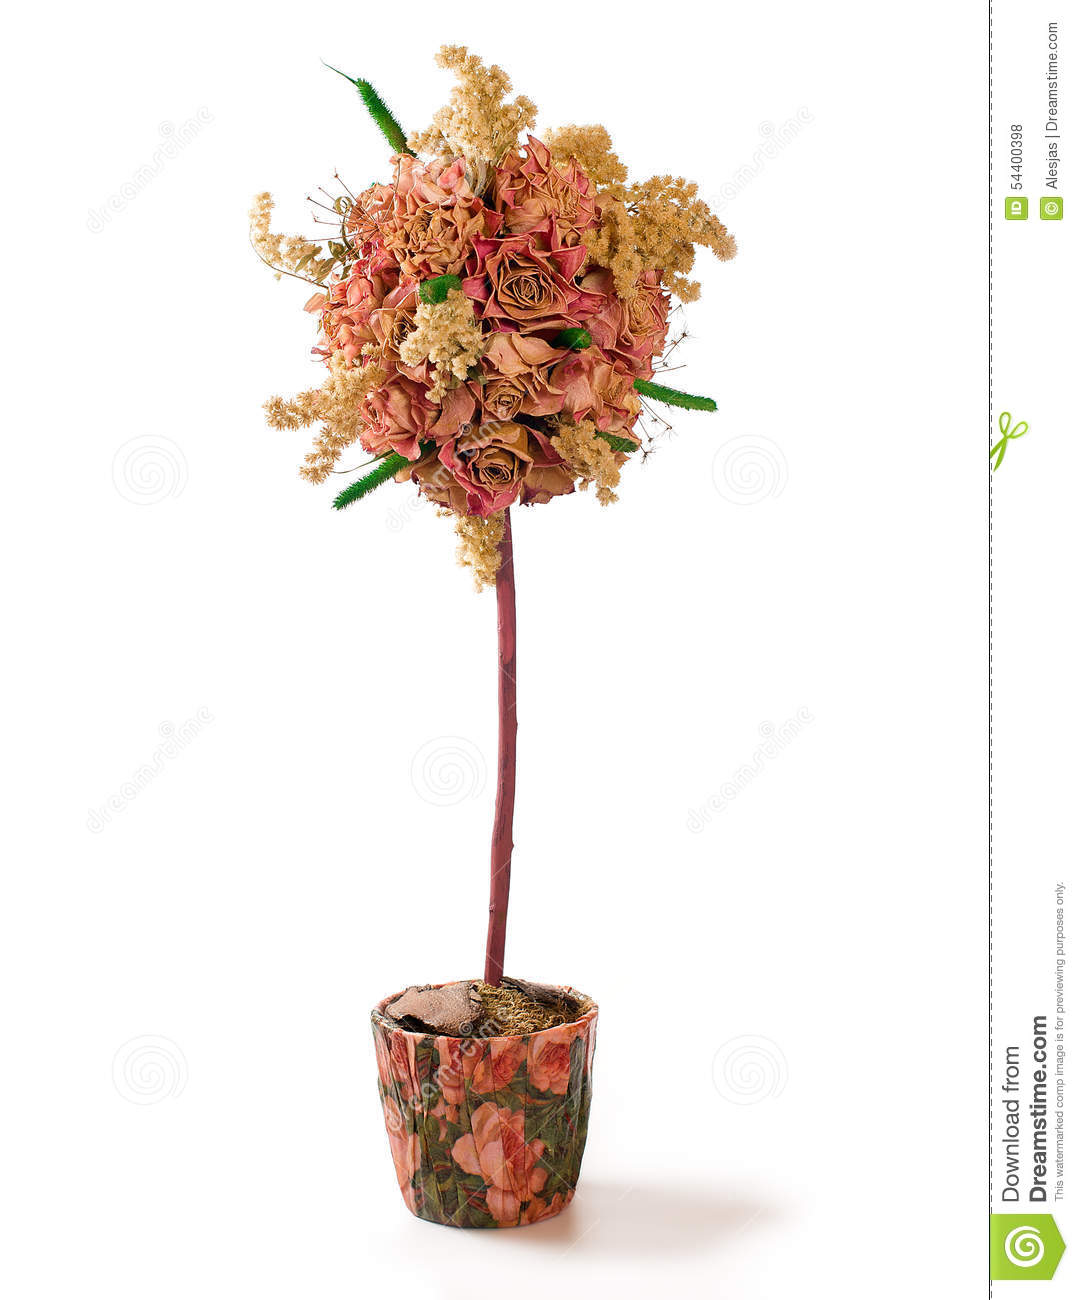 Floral Topiary Over White Background Stock Photo Image Of Flowers Materials 54400398